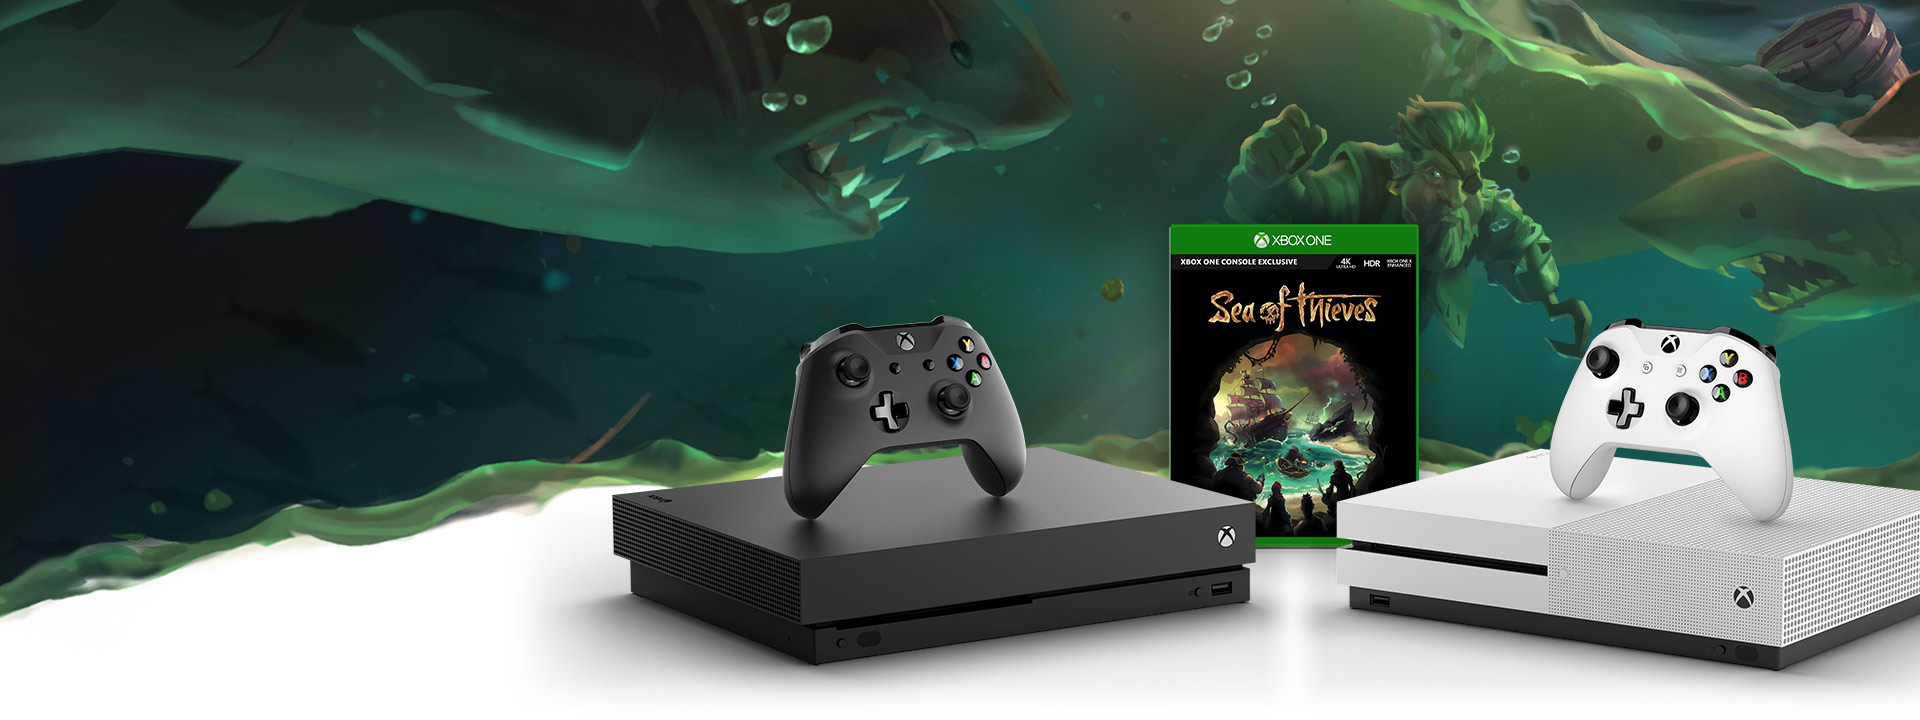 Xbox One X Sea of Thieves boxshot and Xbox One S with Sea of Thieves sharks